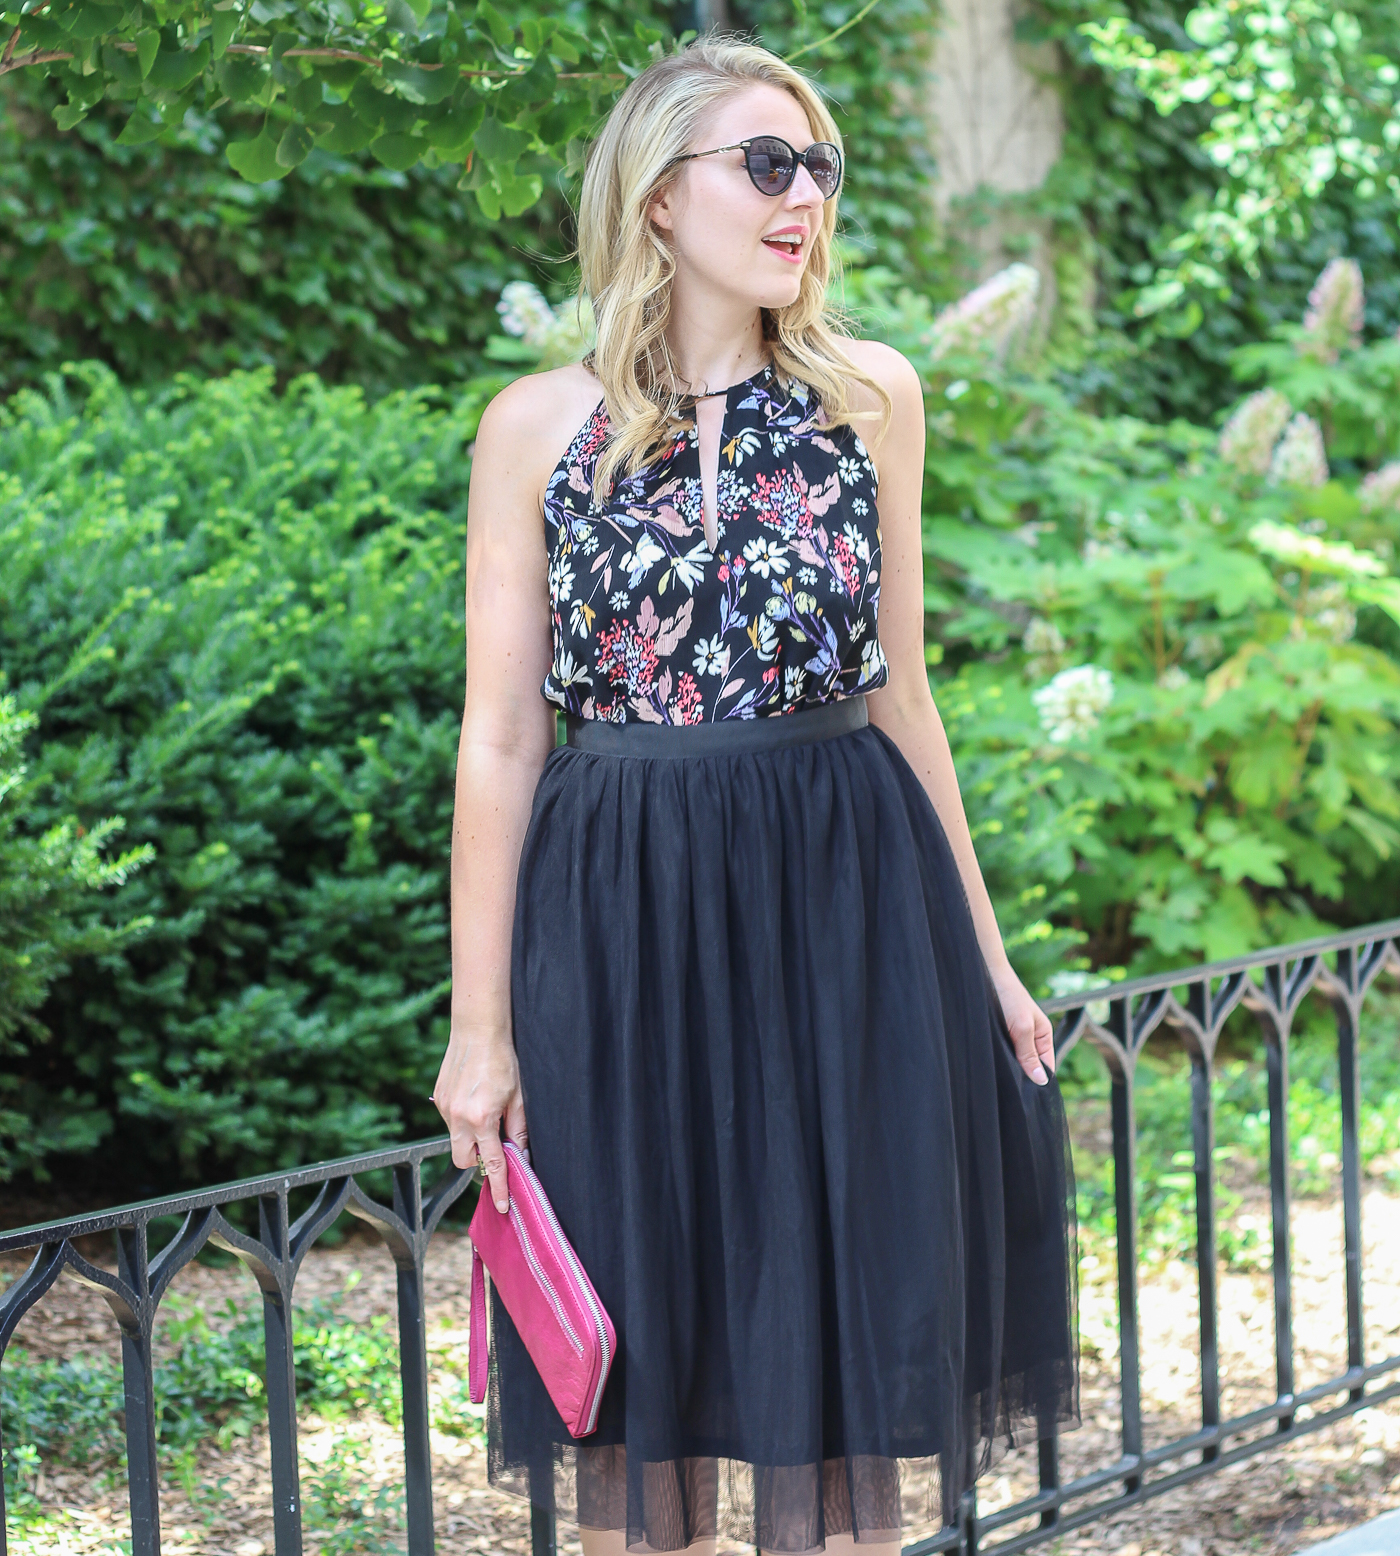 How to wear a tulle skirt in the summer